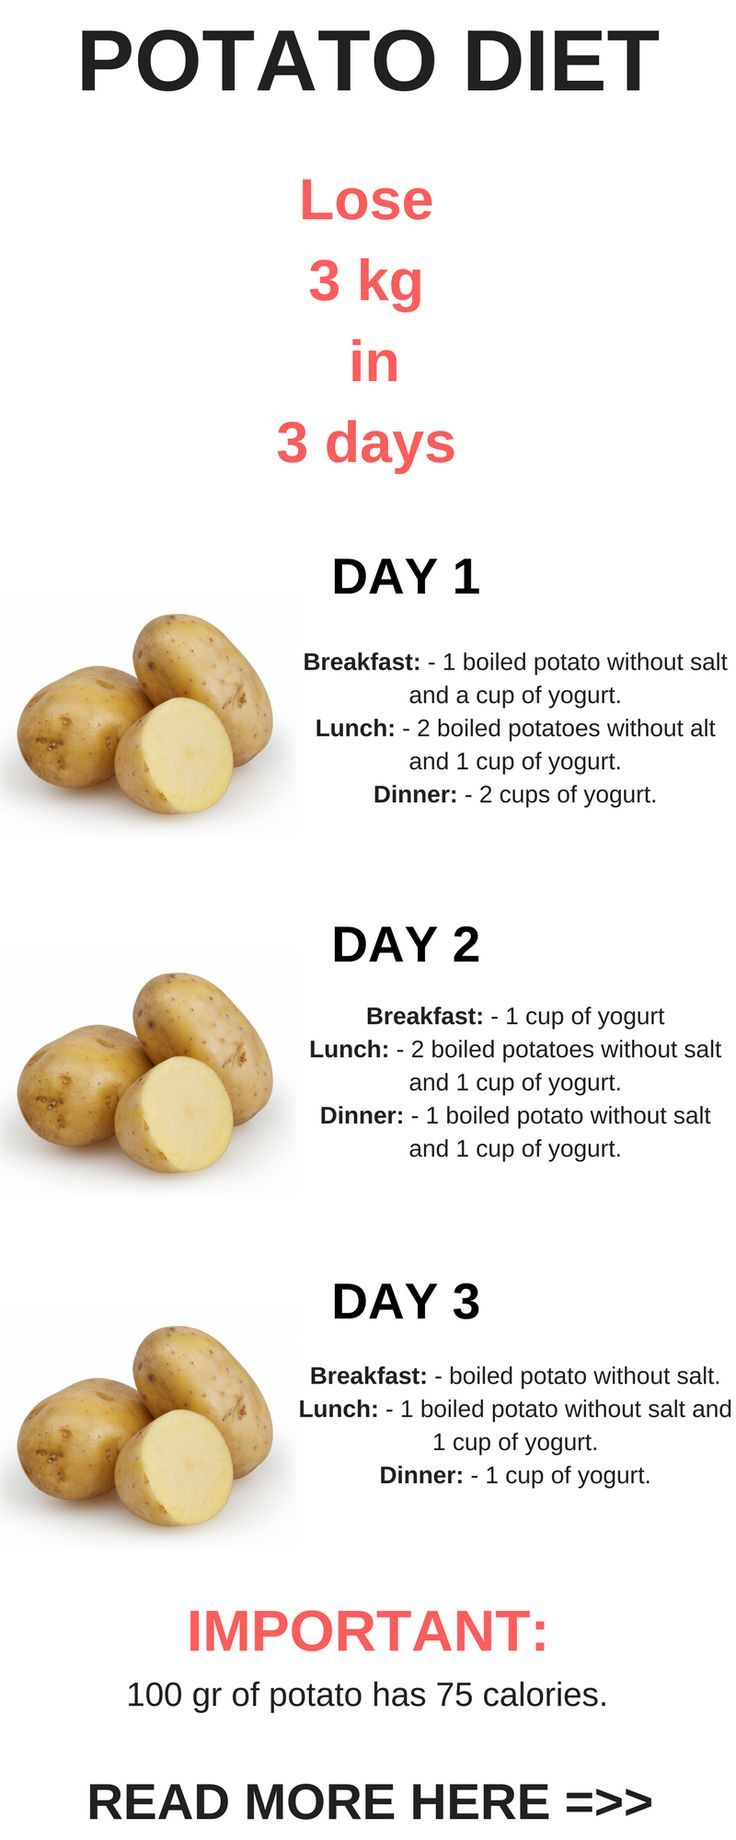 Potato Diet | diet planing in 2019 | Potato diet, Egg diet, Detox diet plan